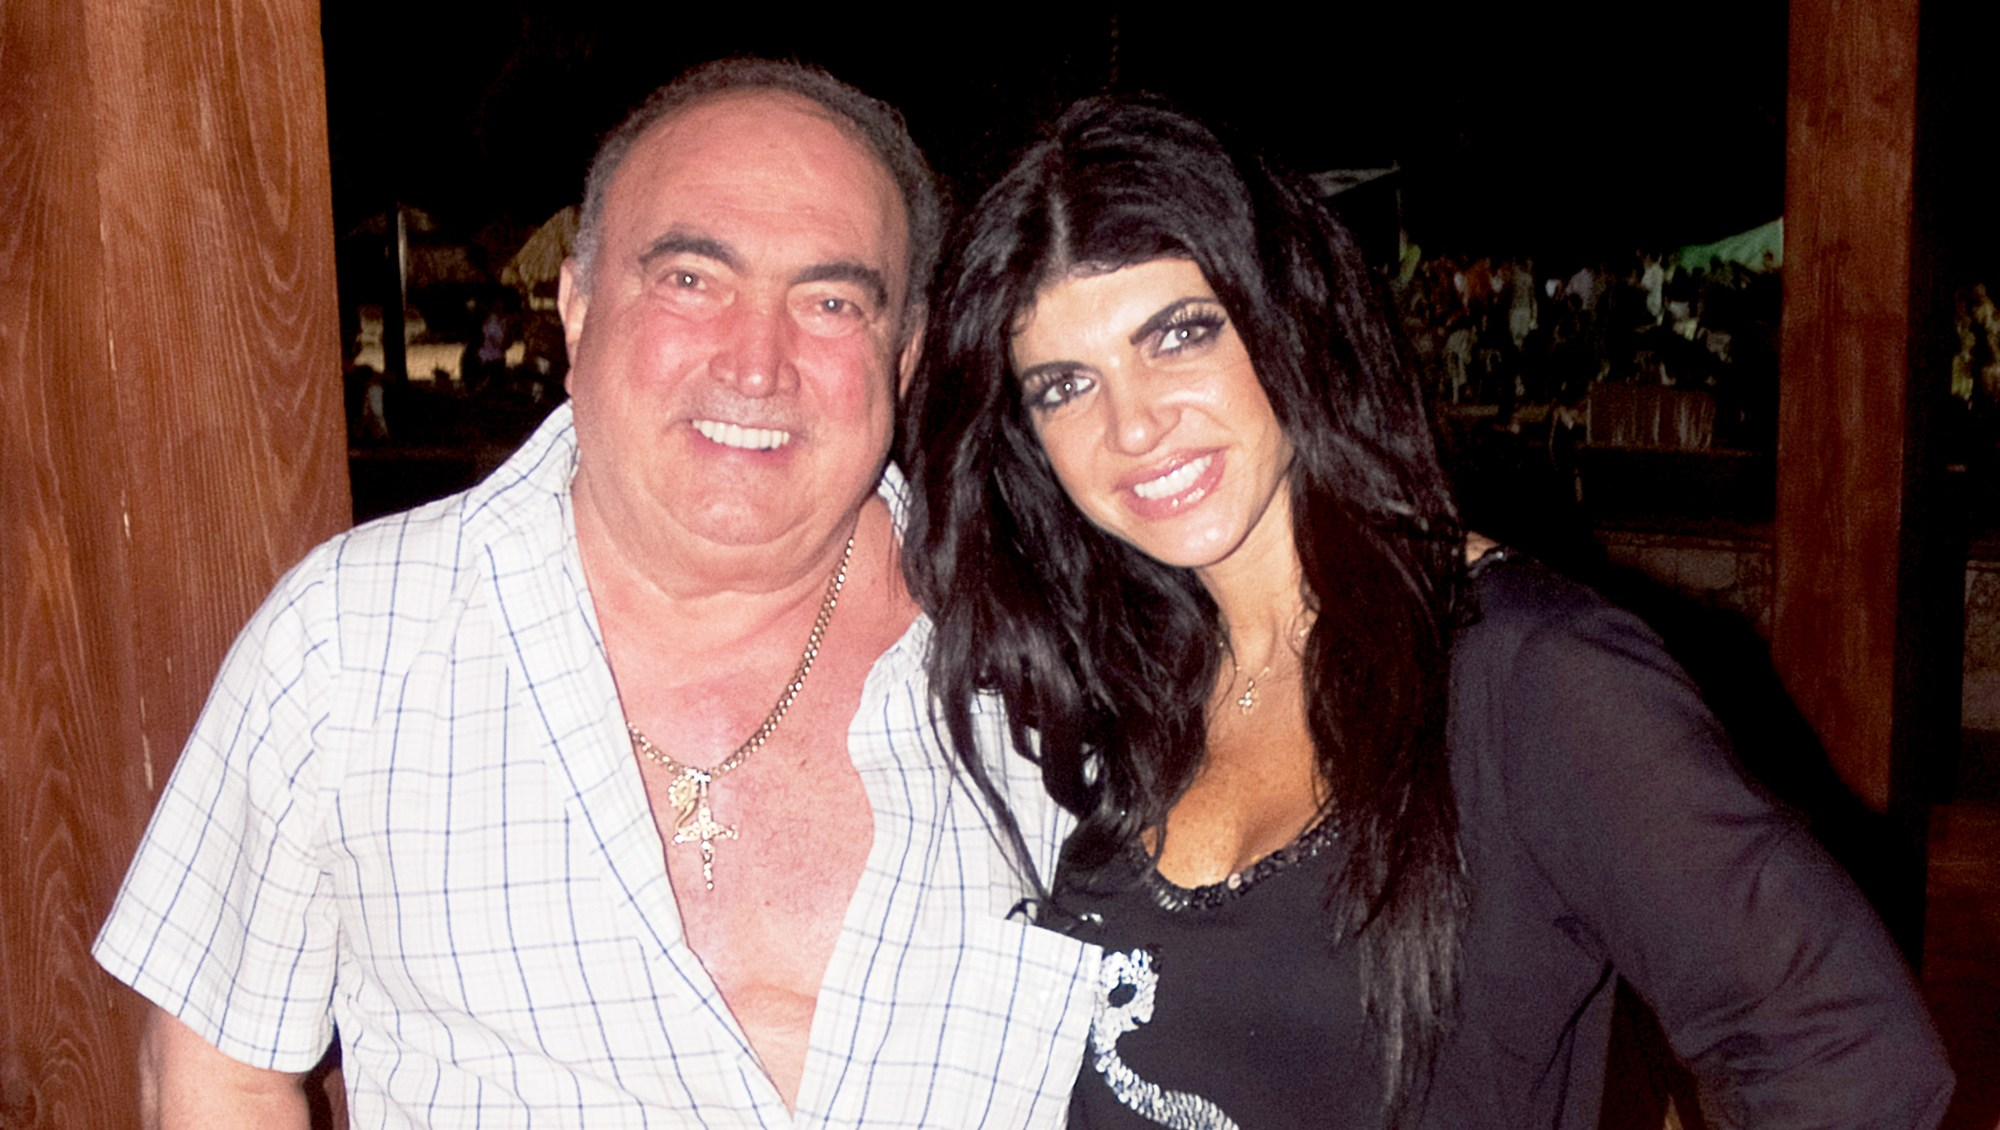 Teresa Giudice and Giacinto Gorga at the Majestic Resort on March 3, 2013 in Punta Cana, Dominican Republic.